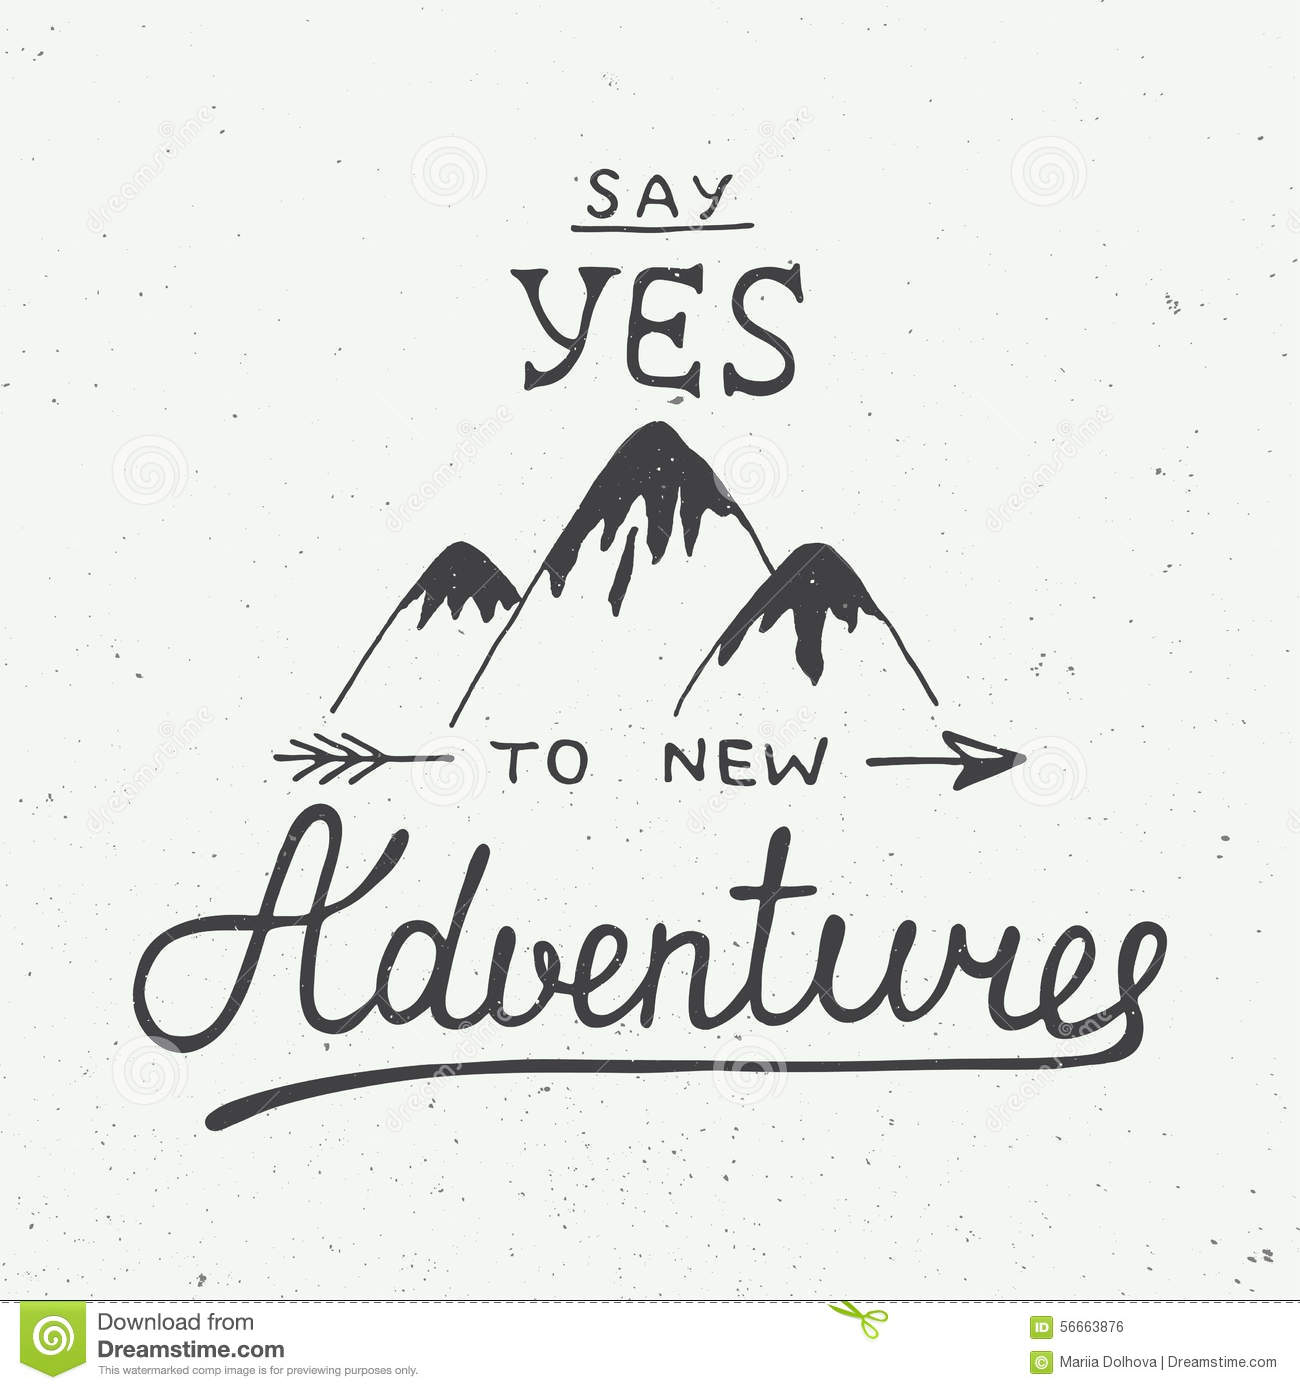 Say It Creative Personalized Shop: Say Yes To New Adventures In Vintage Style Stock Vector